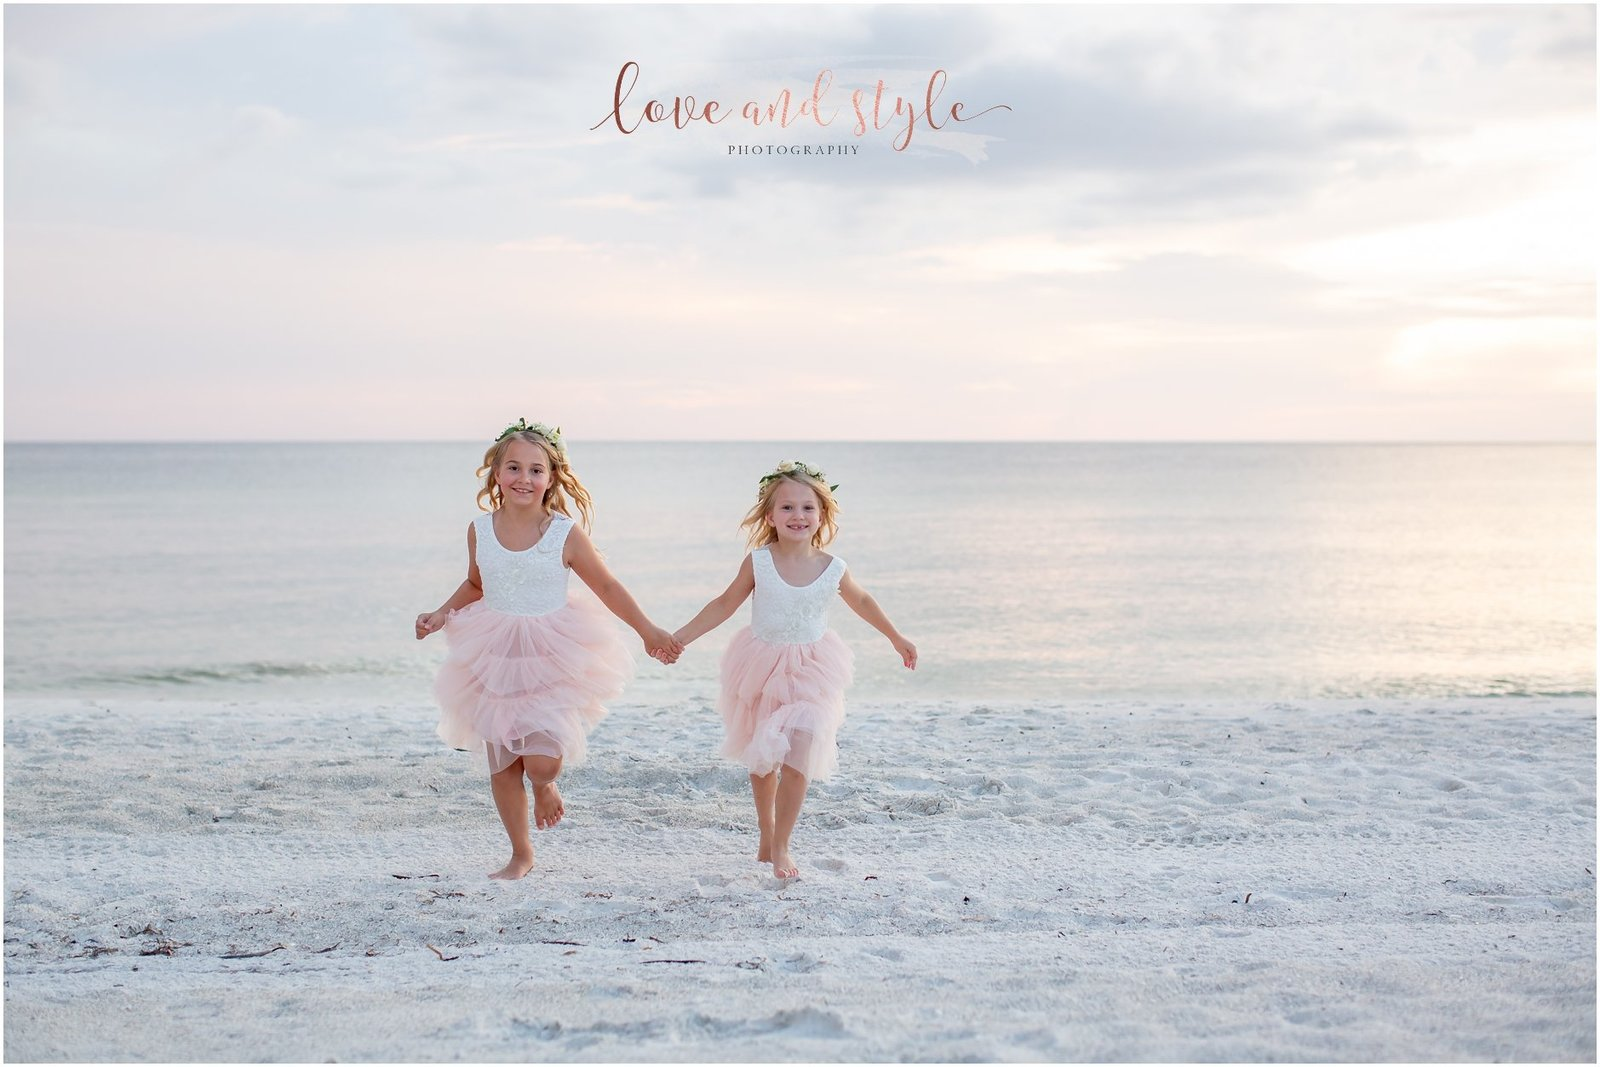 Flower girls in pink tutus and flower crowns on Bradenton Beach, Anna Maria Island